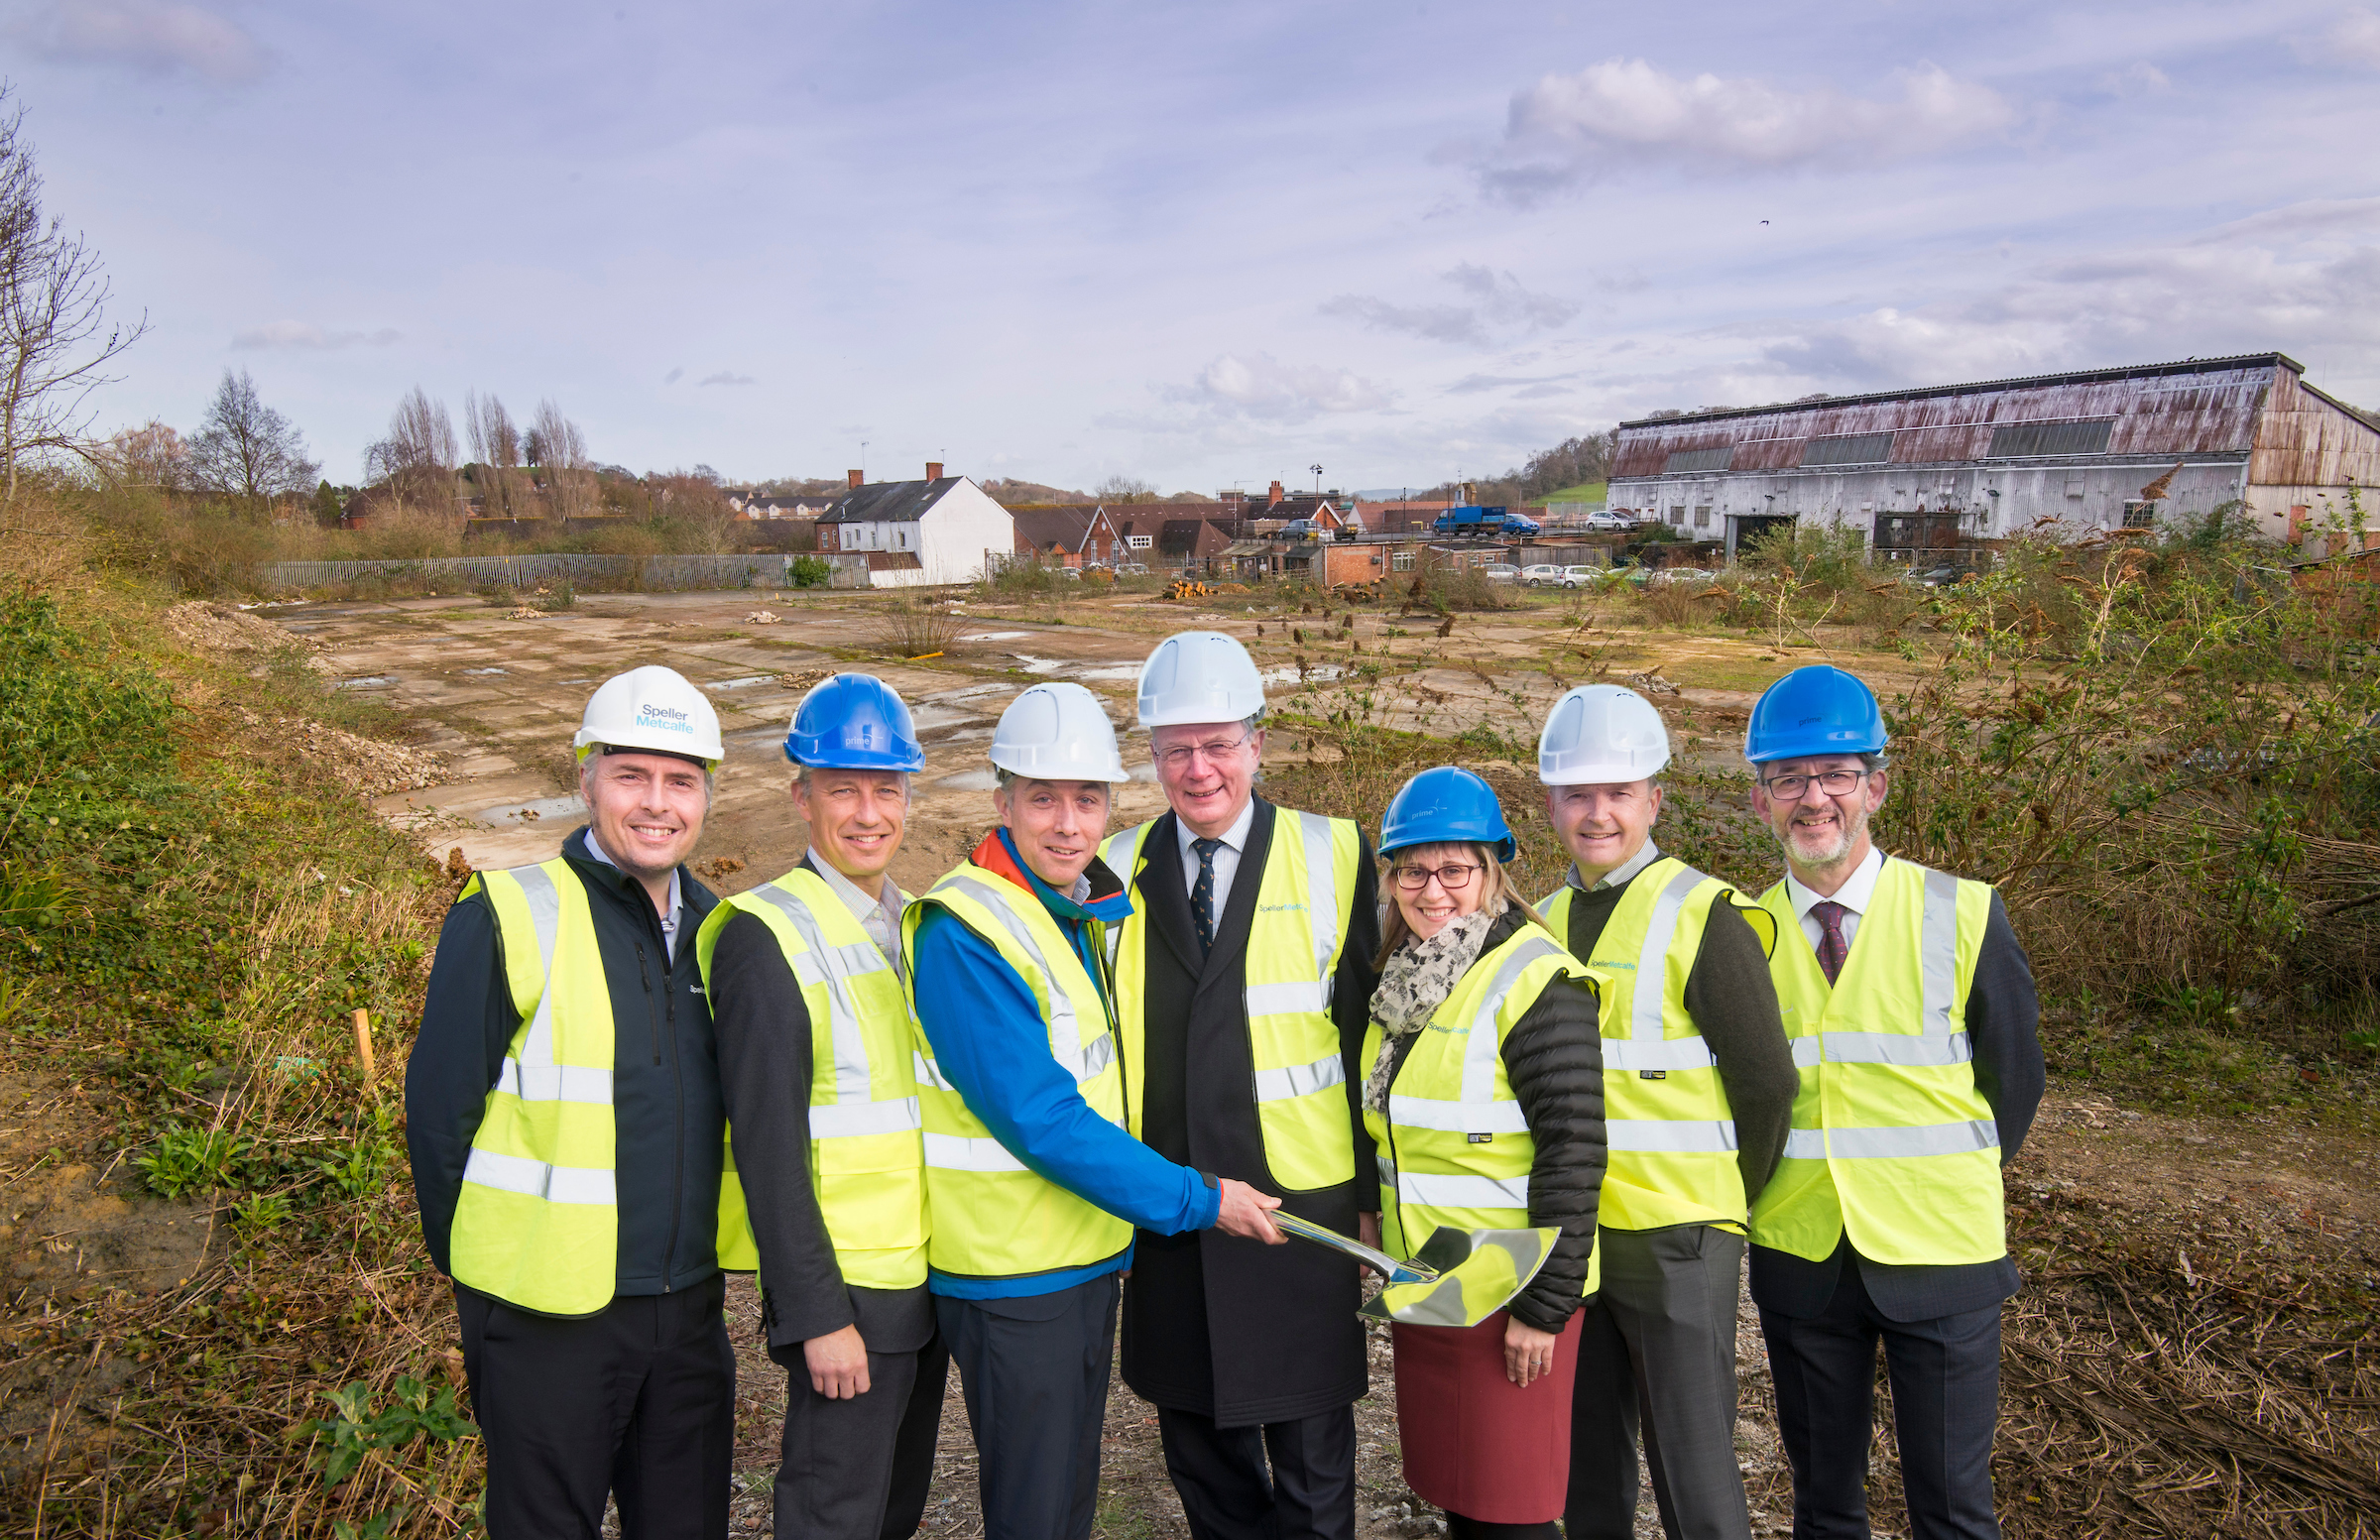 CONSTRUCTION STARTS ON NEW HOSPITAL WORKER HOUSING